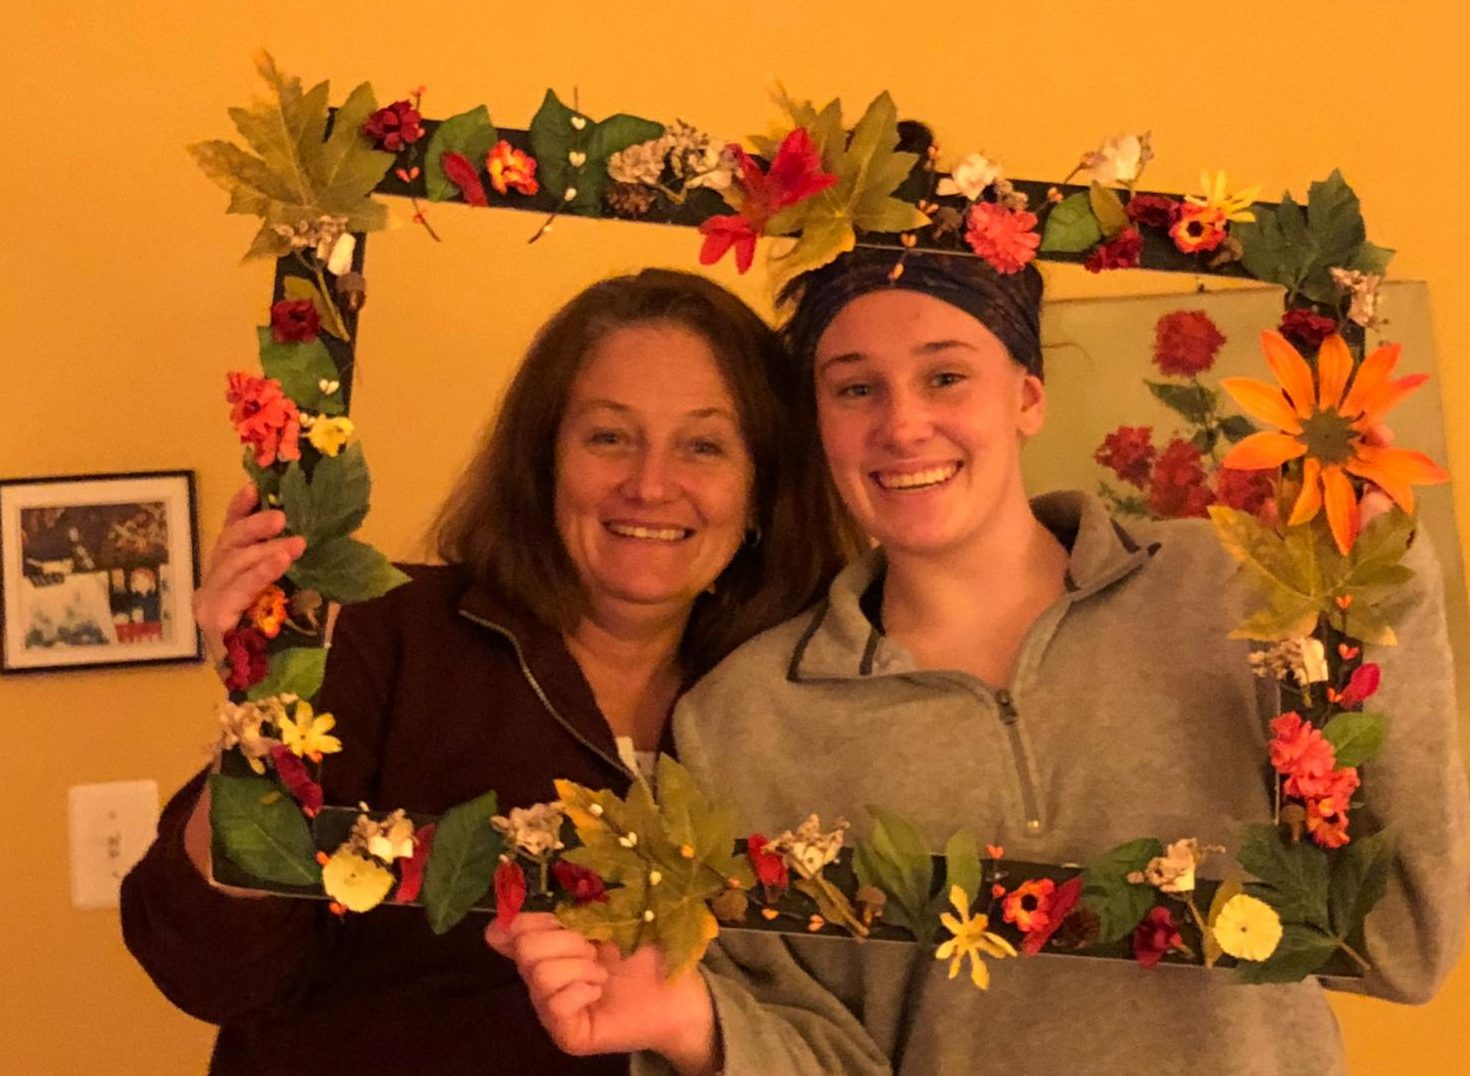 Katie Roach and her mom, Susan Roach, pose with a festive picture frame.